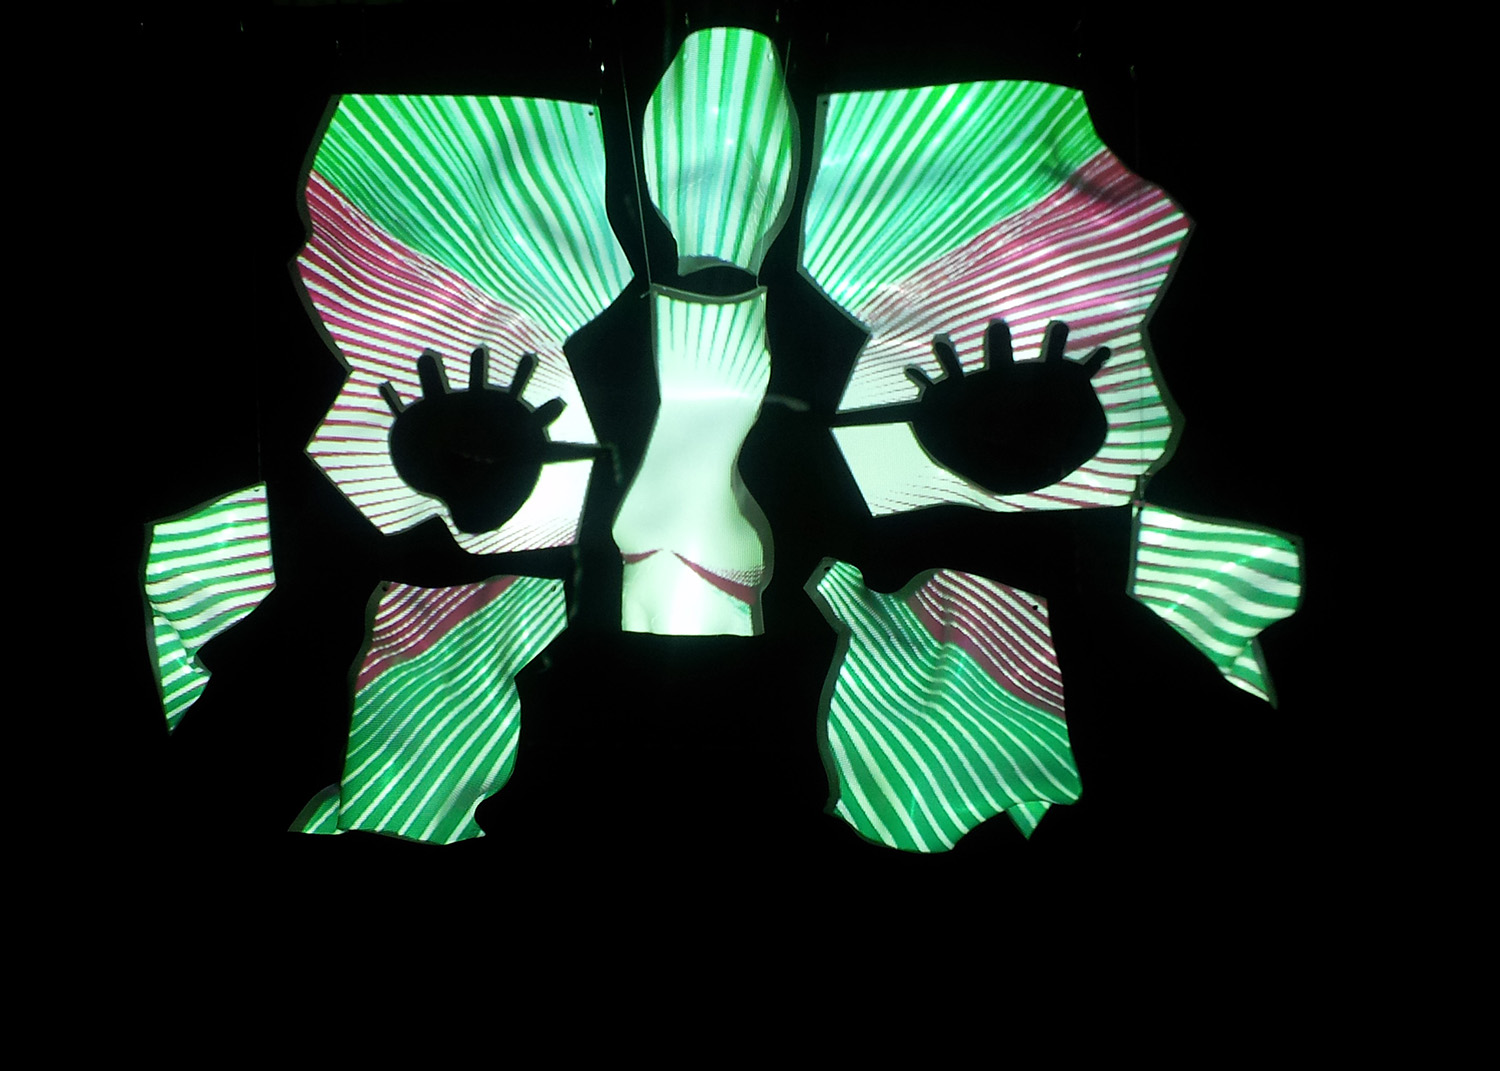 Video mapping on perspex pieces, 2012.